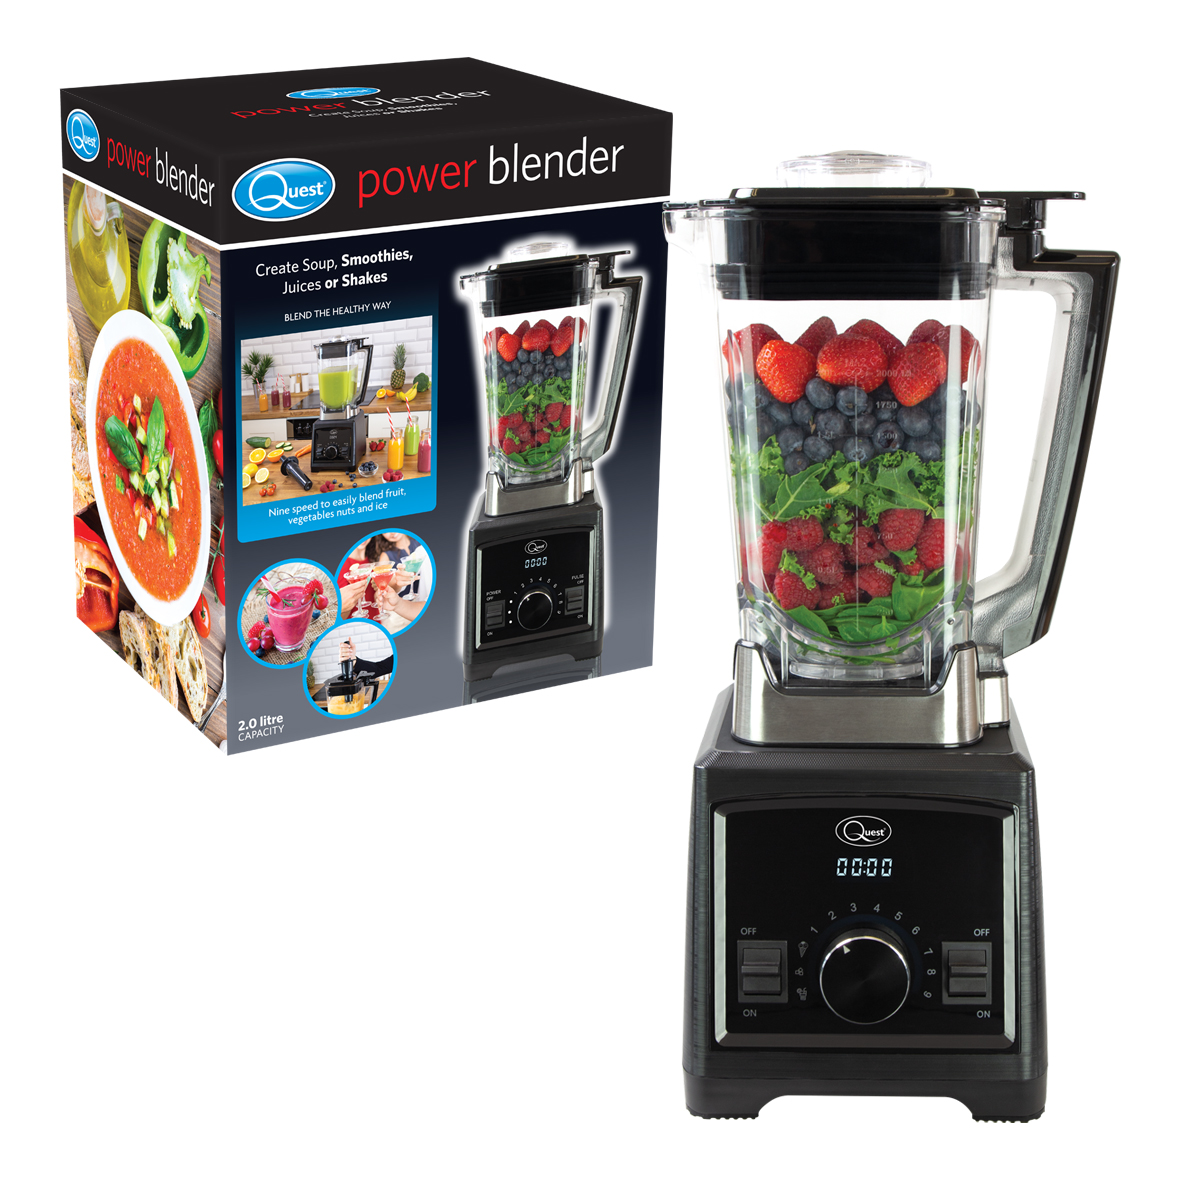 2Litre Heavy Duty Power Blender - Professional level high powered blender, perfect for batch preparing soups and sauces, and making smoothies, juices, shakes.